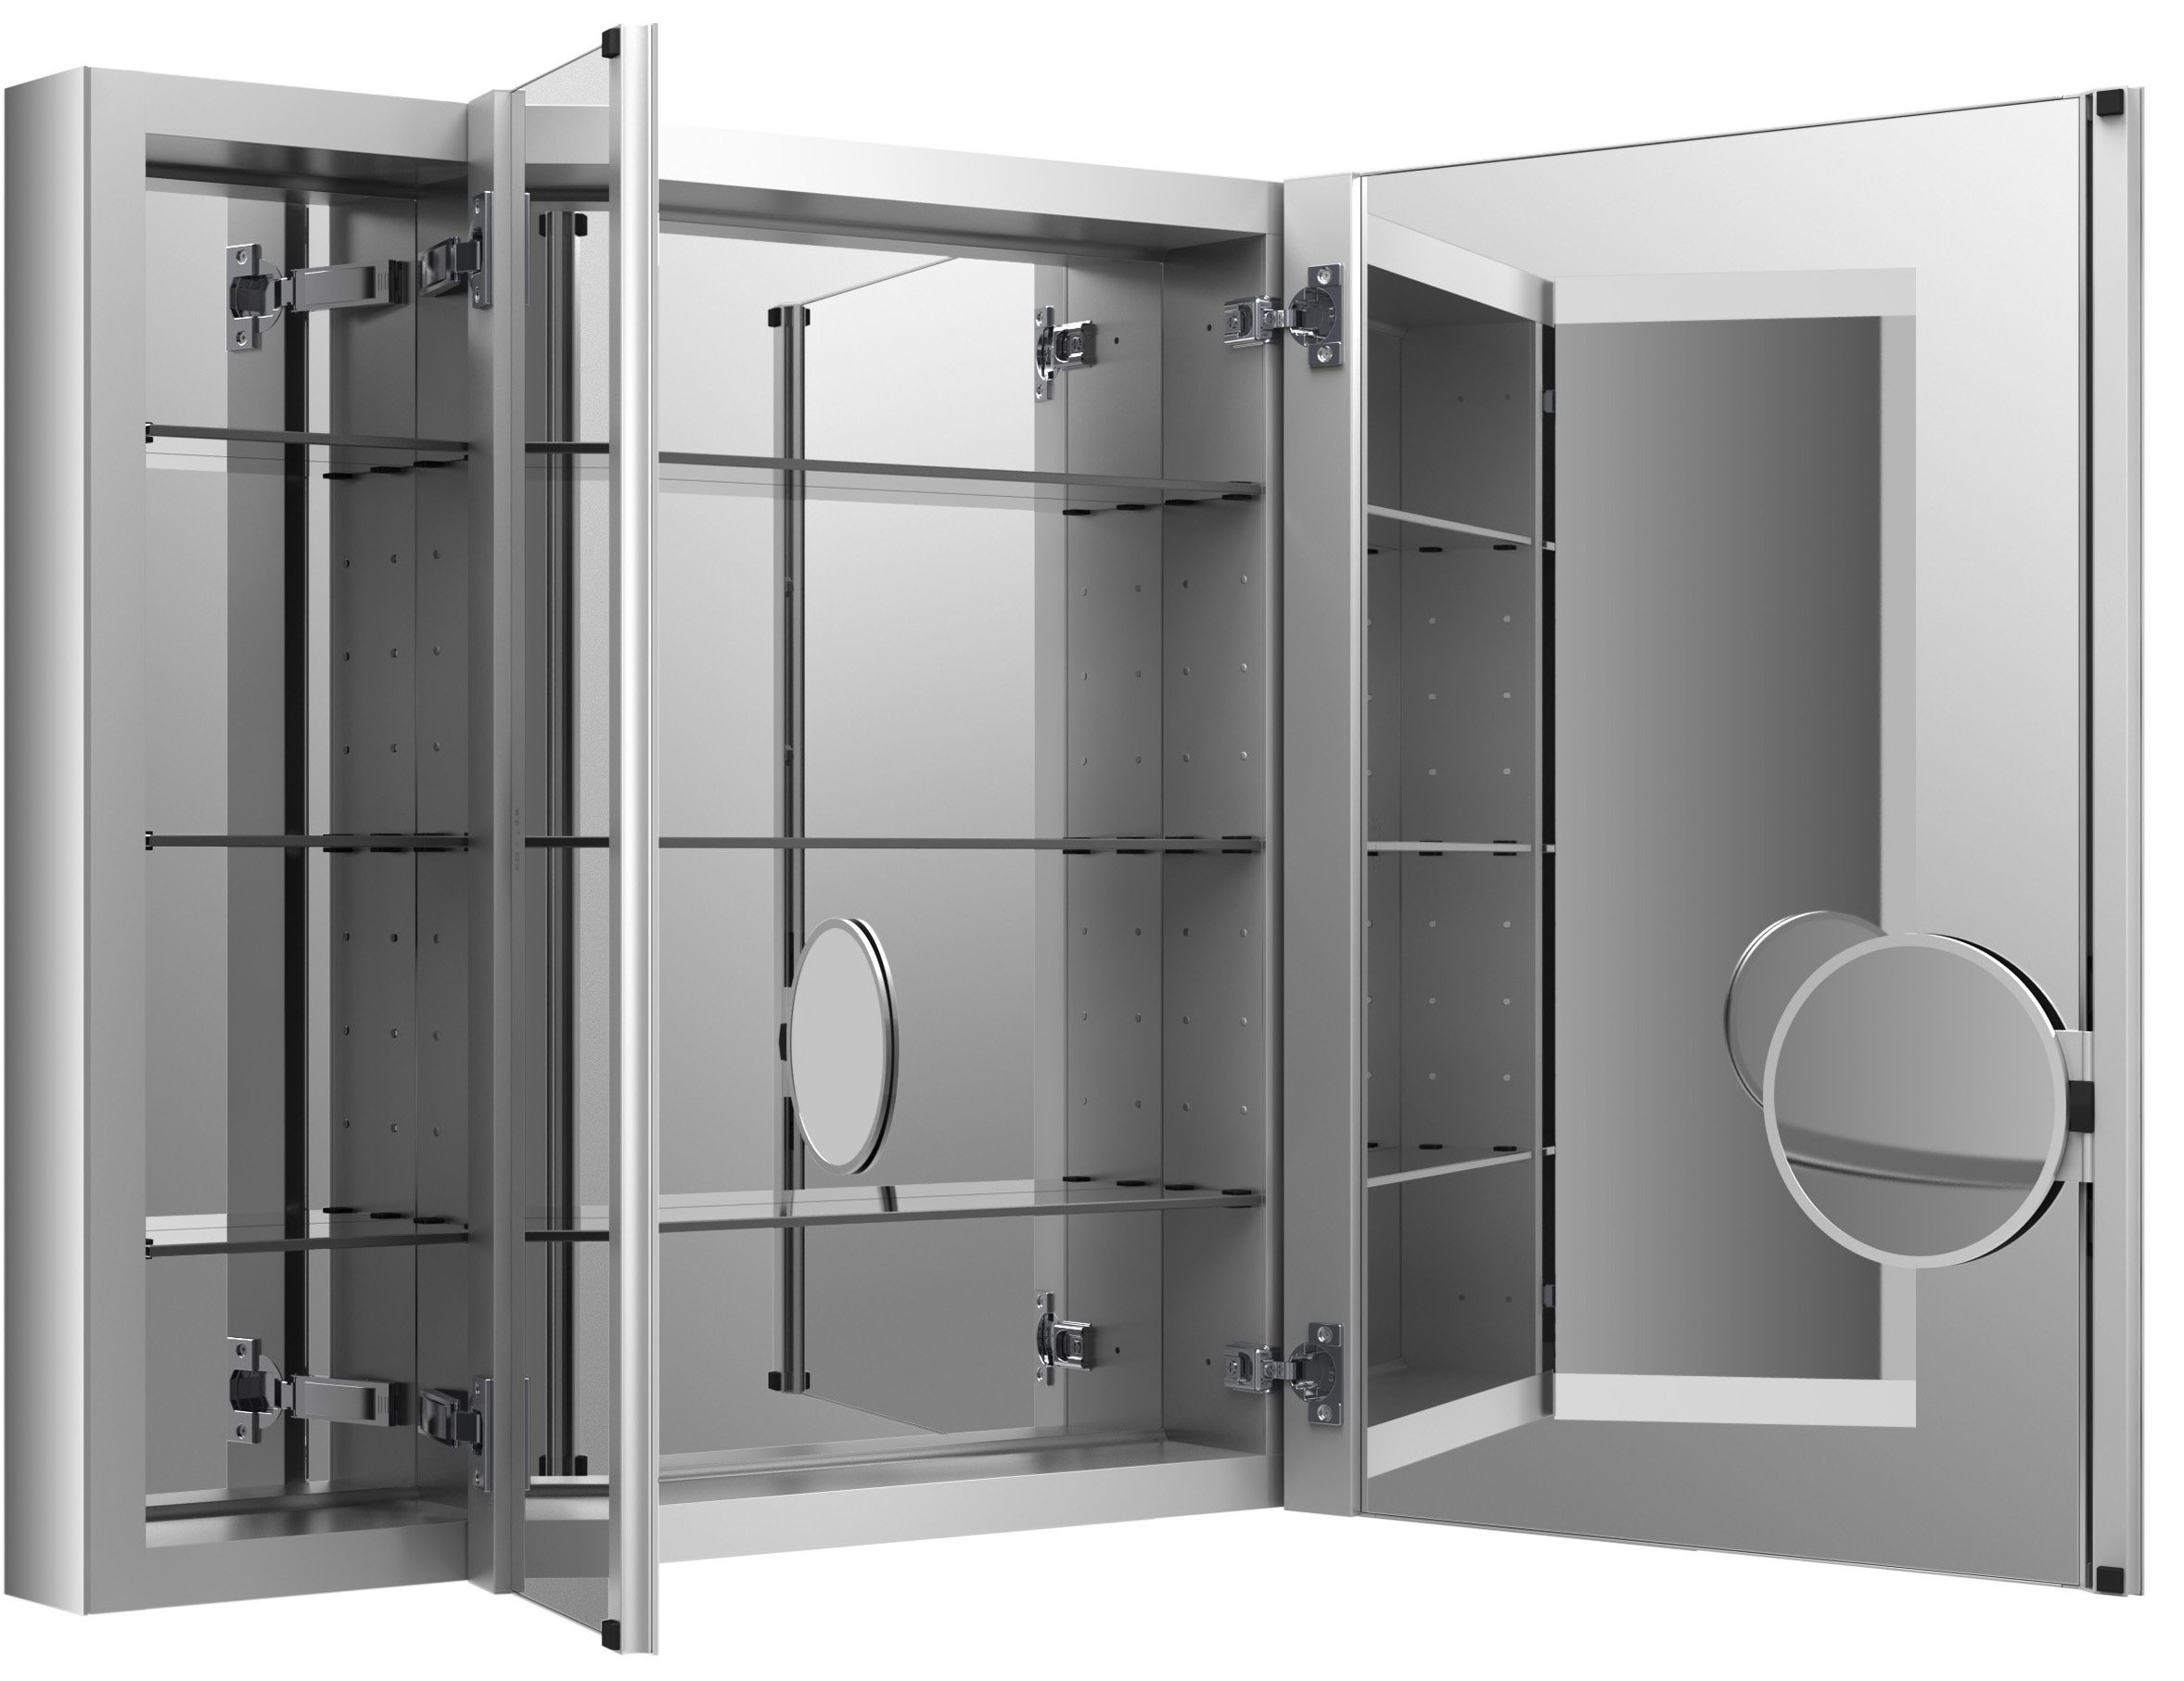 KOHLER K-99011-NA Verdera 40-Inch By 30-Inch Slow-Close Medicine Cabinet With Magnifying Mirror by Kohler